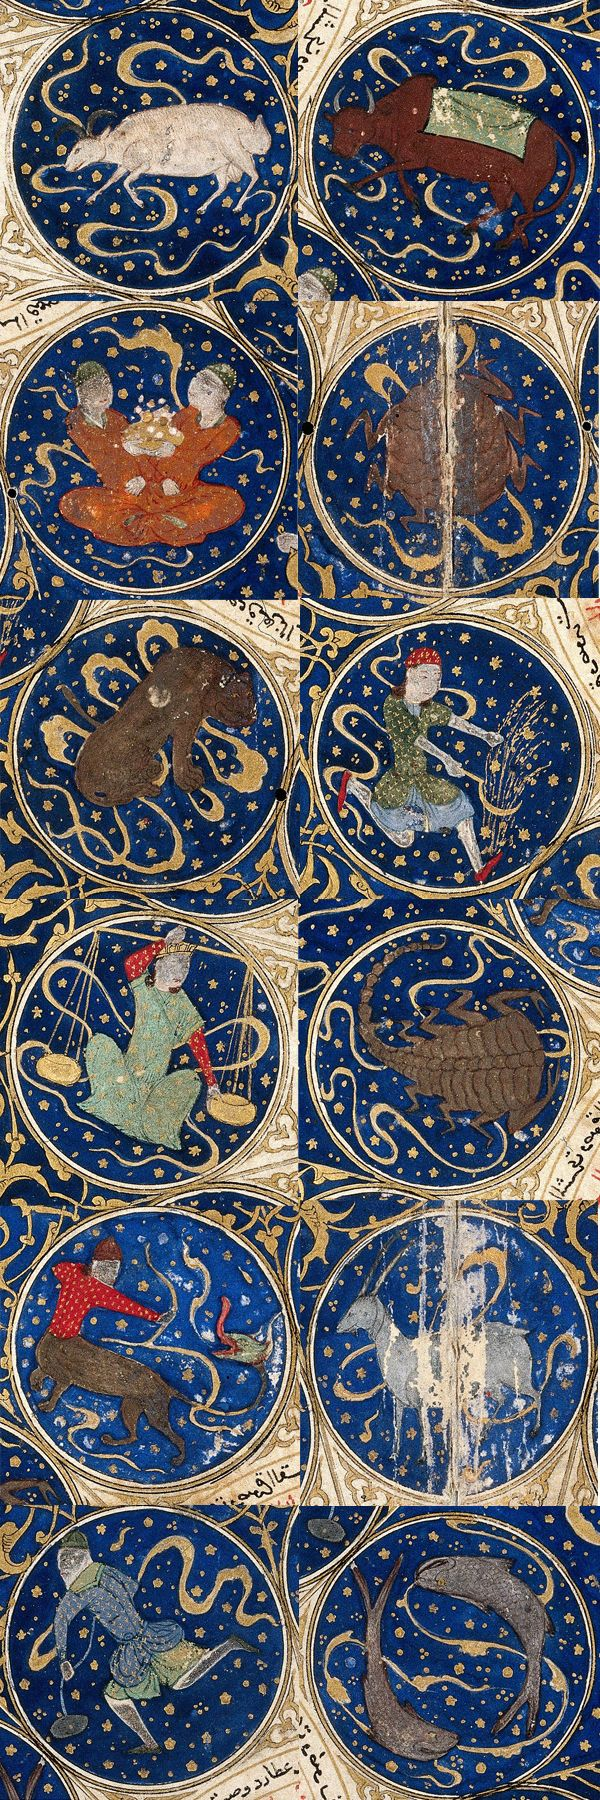 Islamic Zodiac signs in the horoscope of Timurid Prince Iskandar - a beautiful example of Islamic art in the Middle Ages.